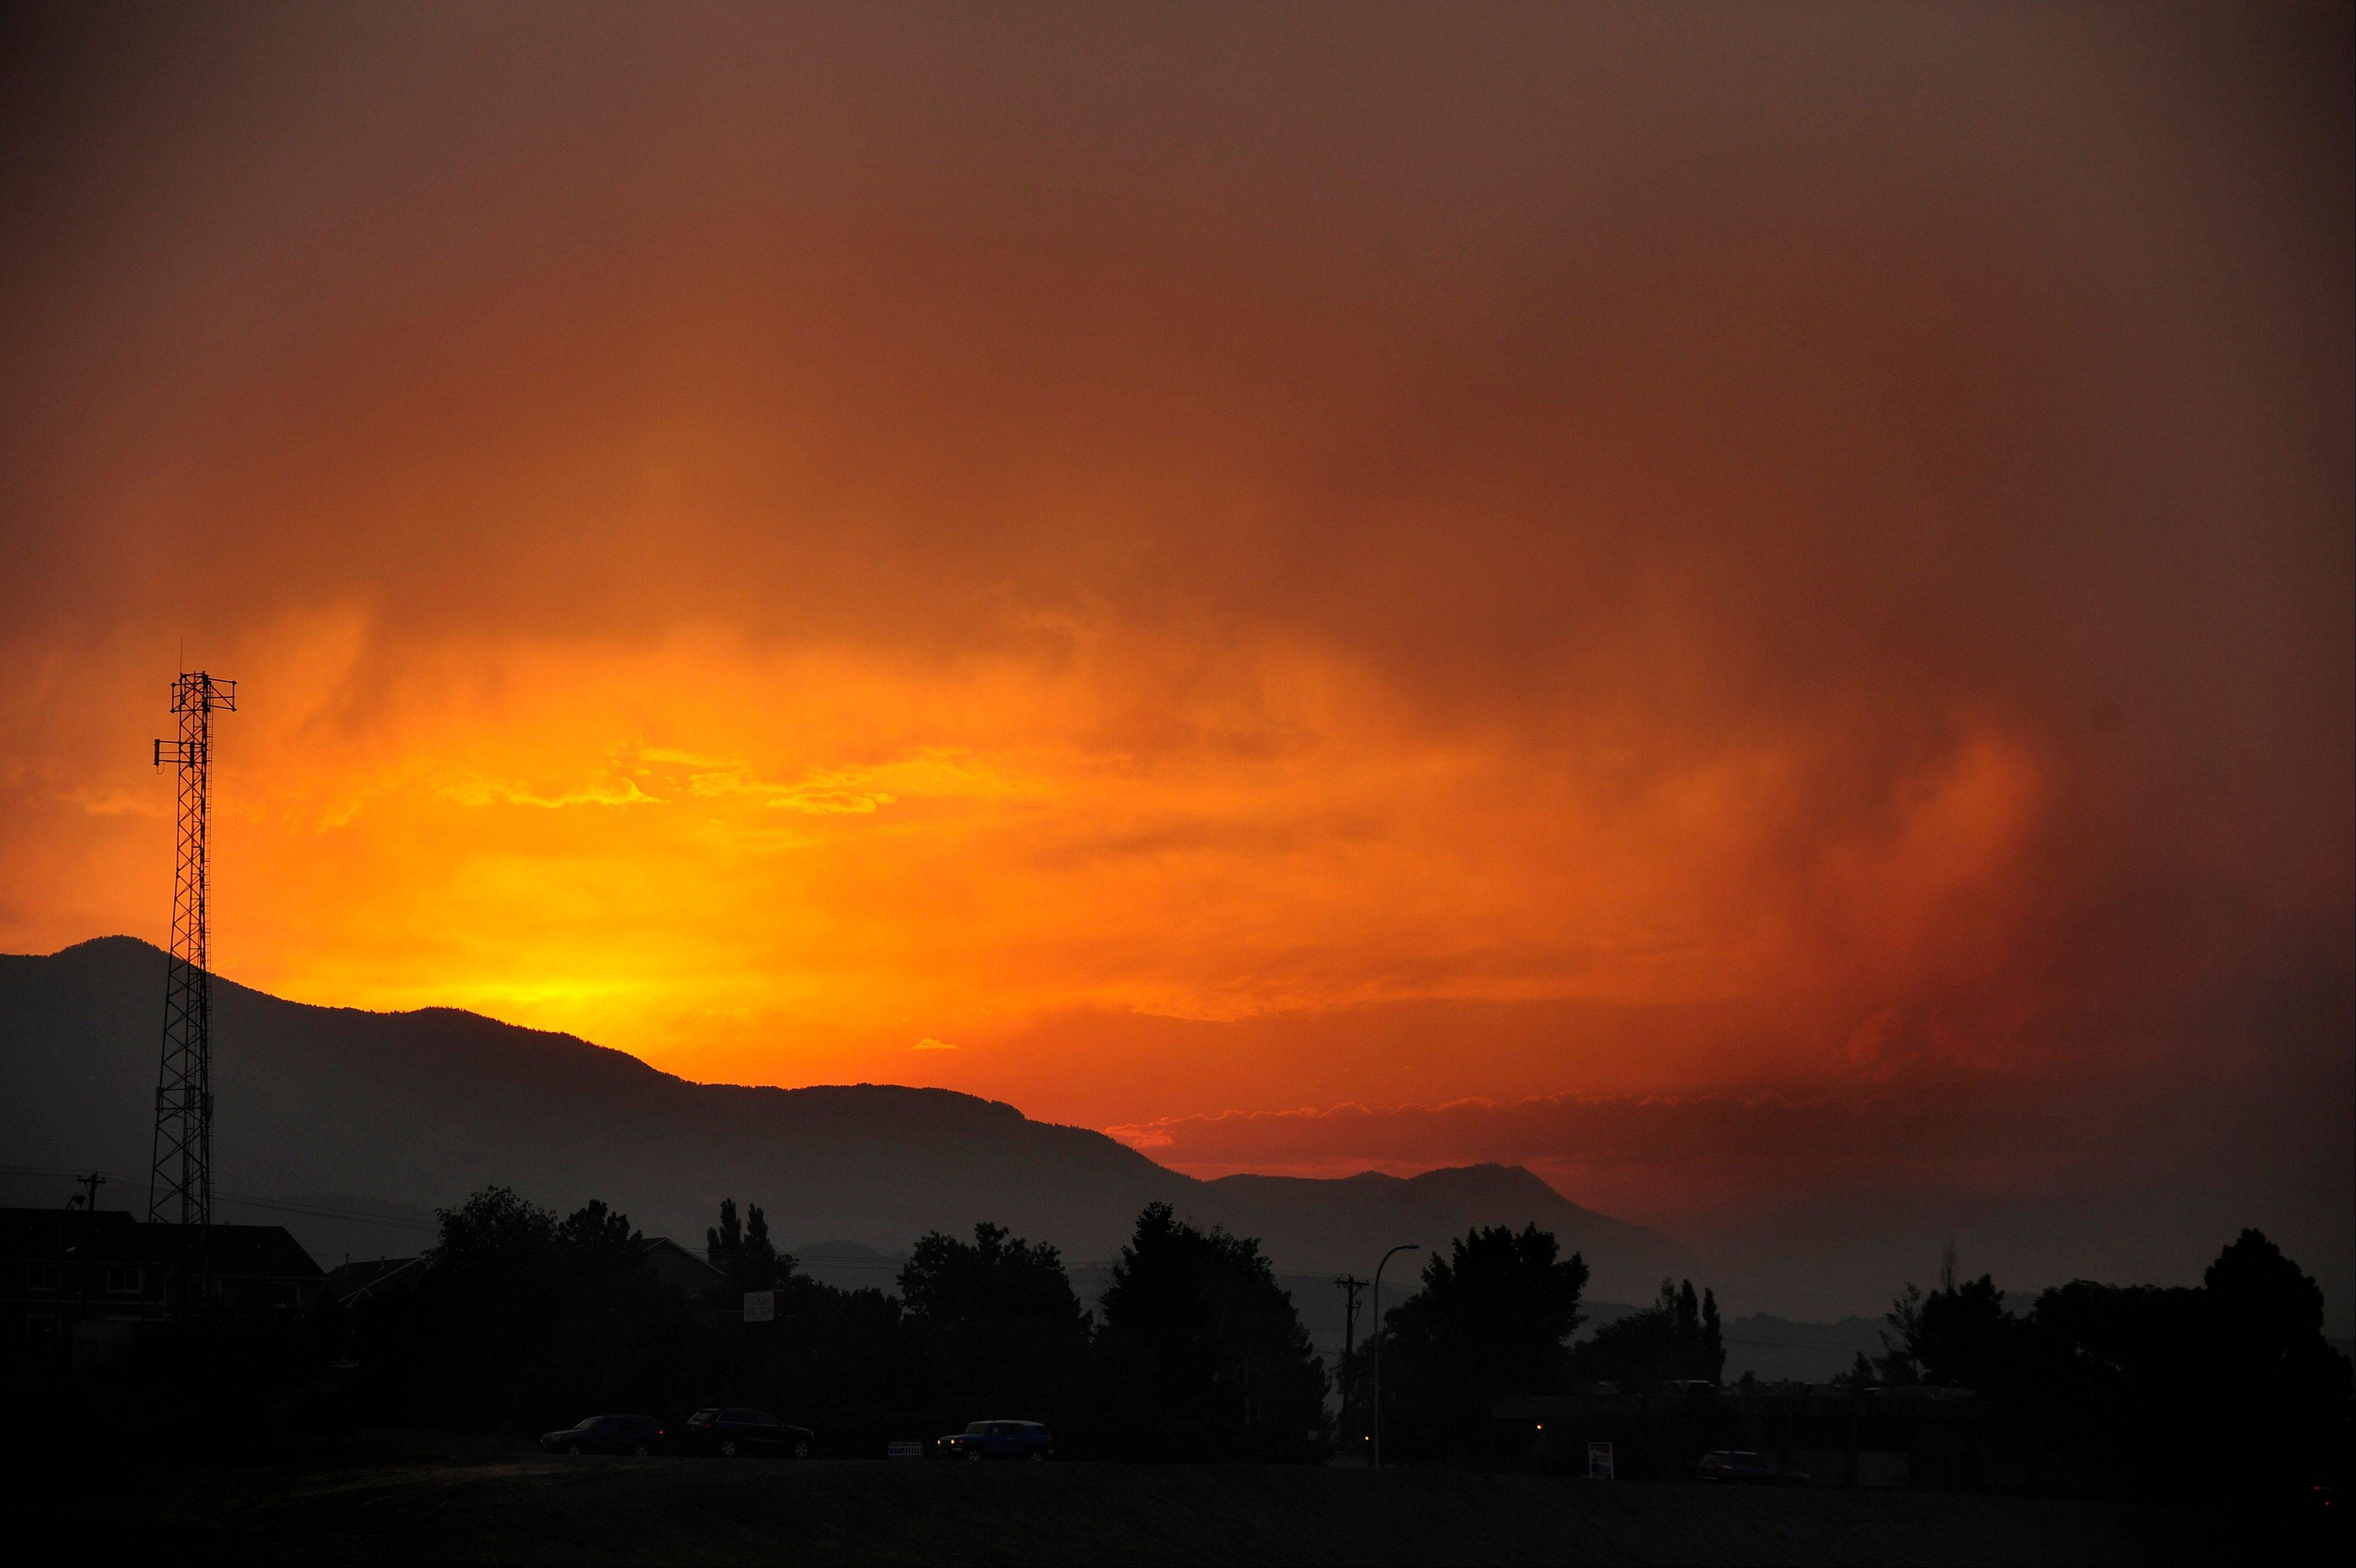 The sun sets as seen from Lower Gold Camp Road as a wildfire continues to burn west of Colorado Springs, Colo. on Sunday, June 24, 2012. The fire erupted Saturday and grew out of control to more than 3 square miles early Sunday, prompting the evacuation of more than 11,000 residents and an unknown number of tourists.